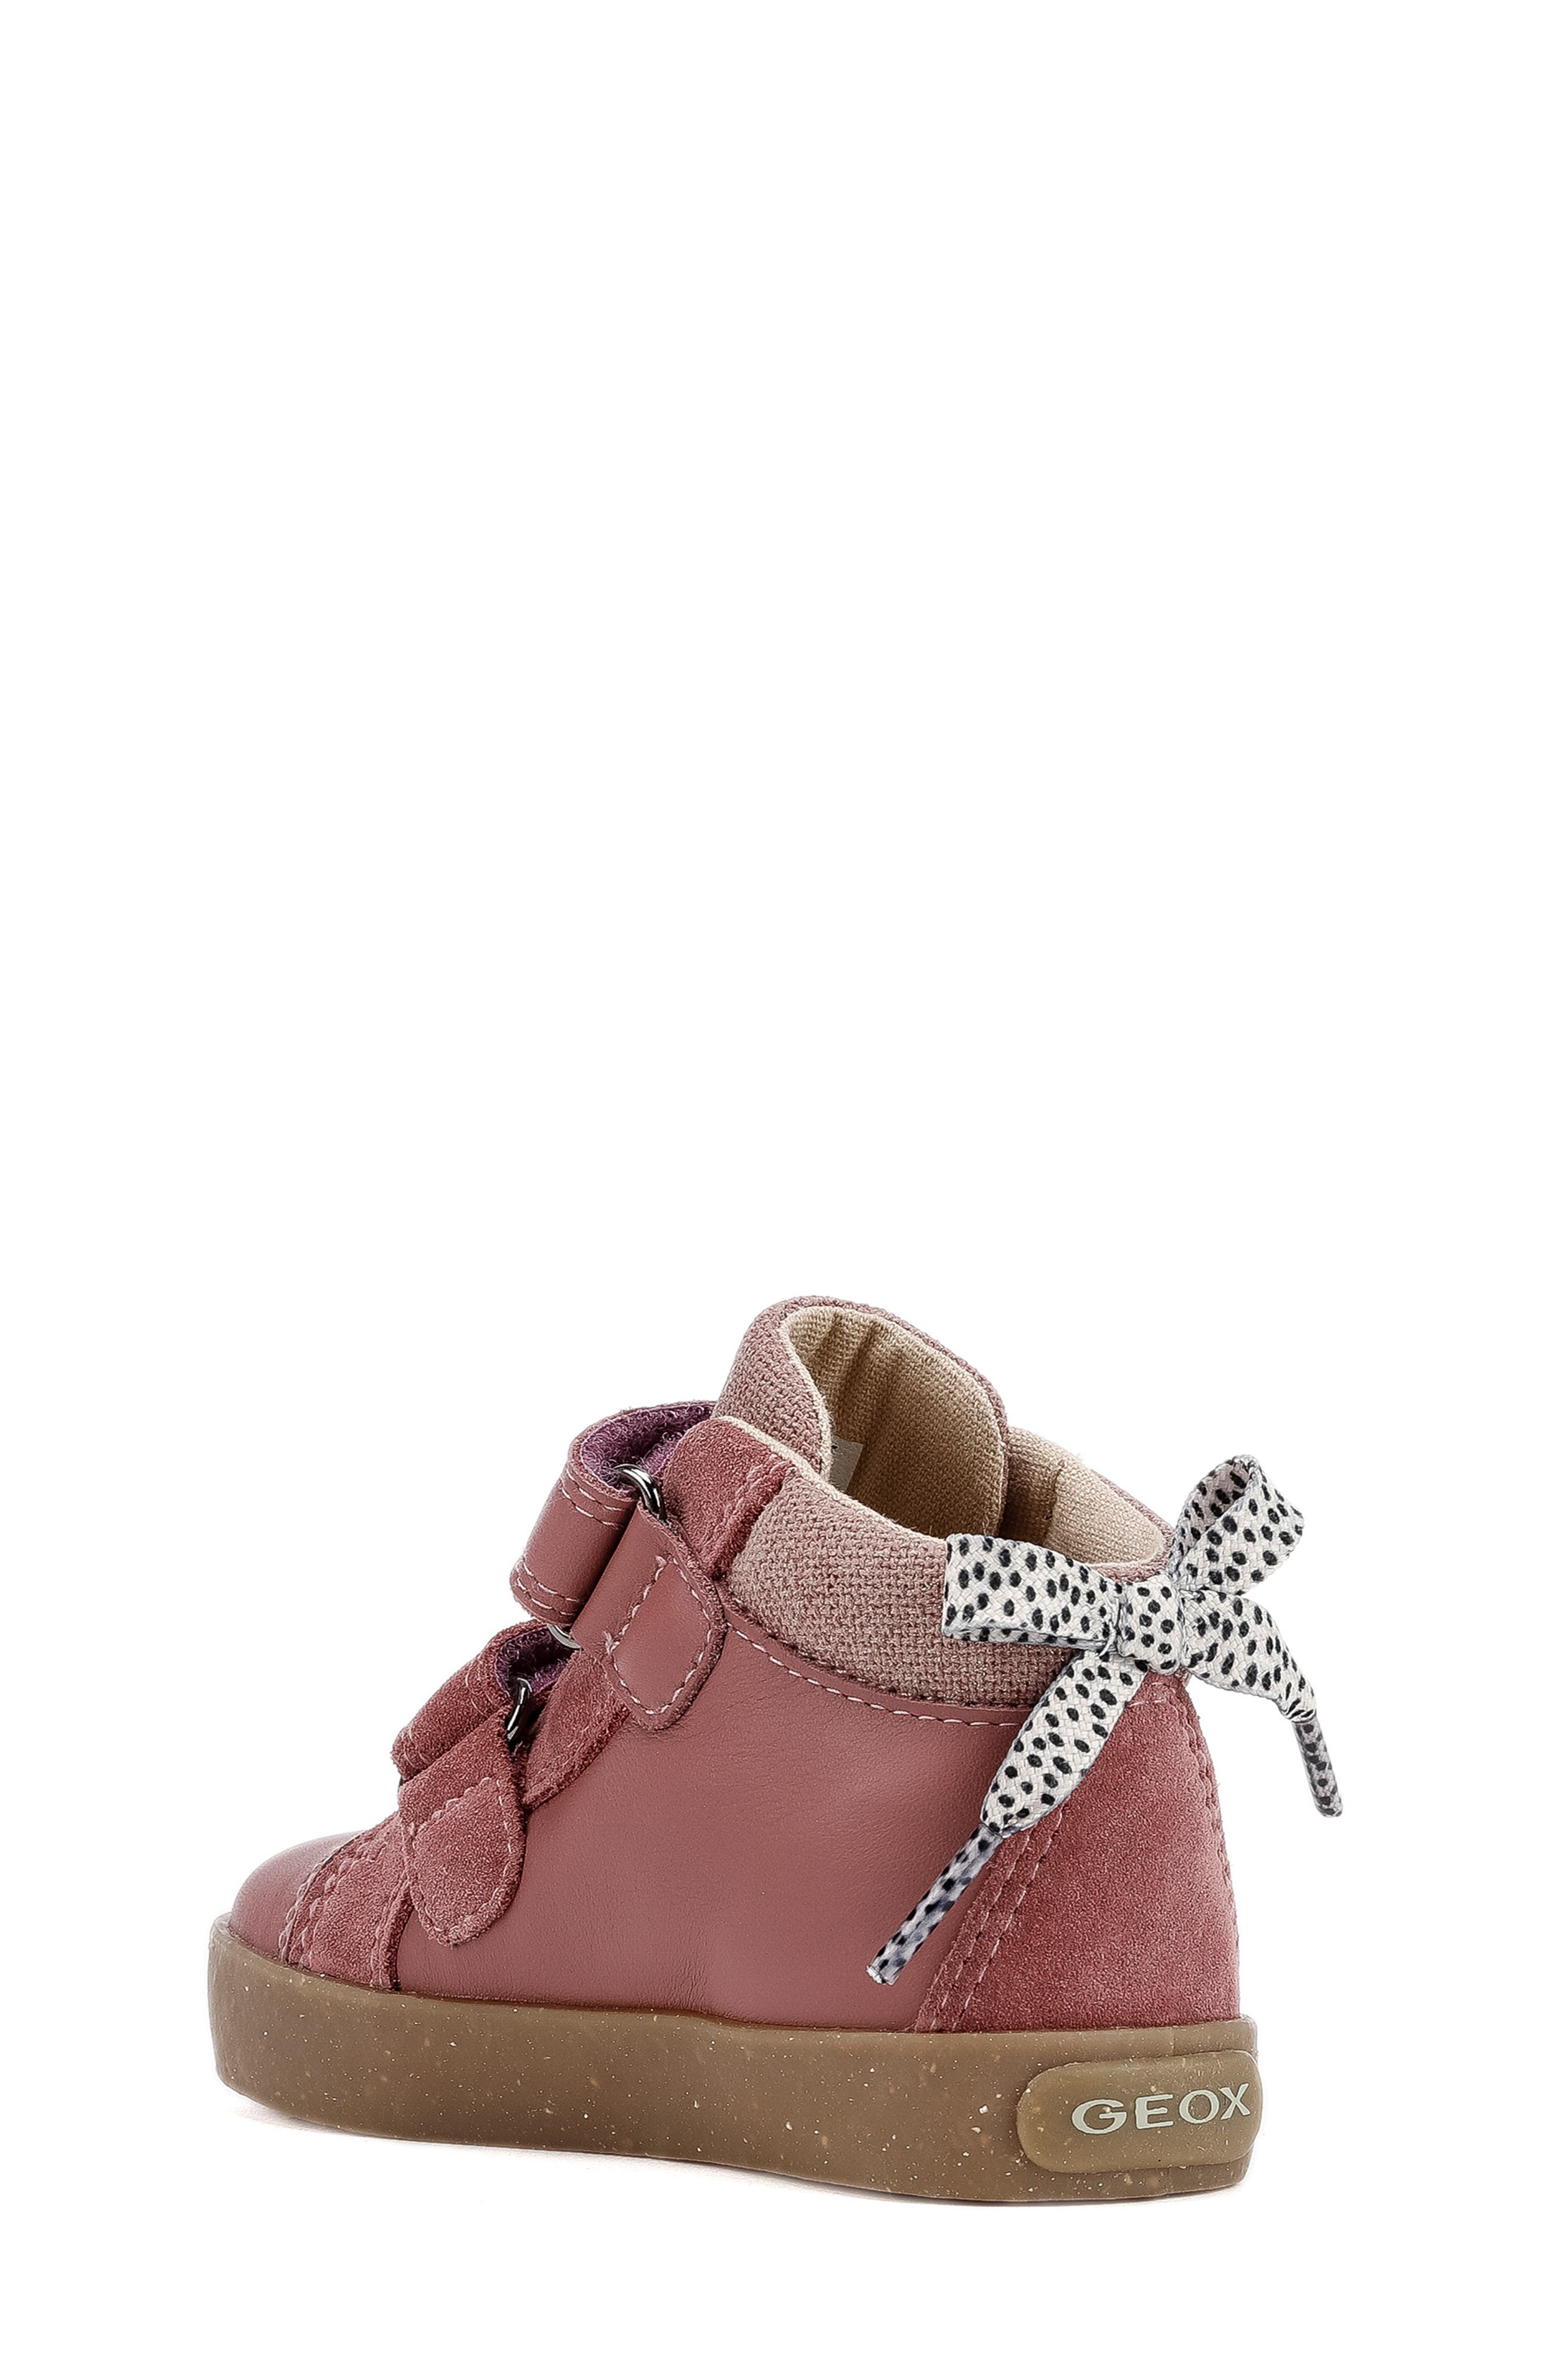 new appearance shop finest selection Kids' Geox | Nordstrom